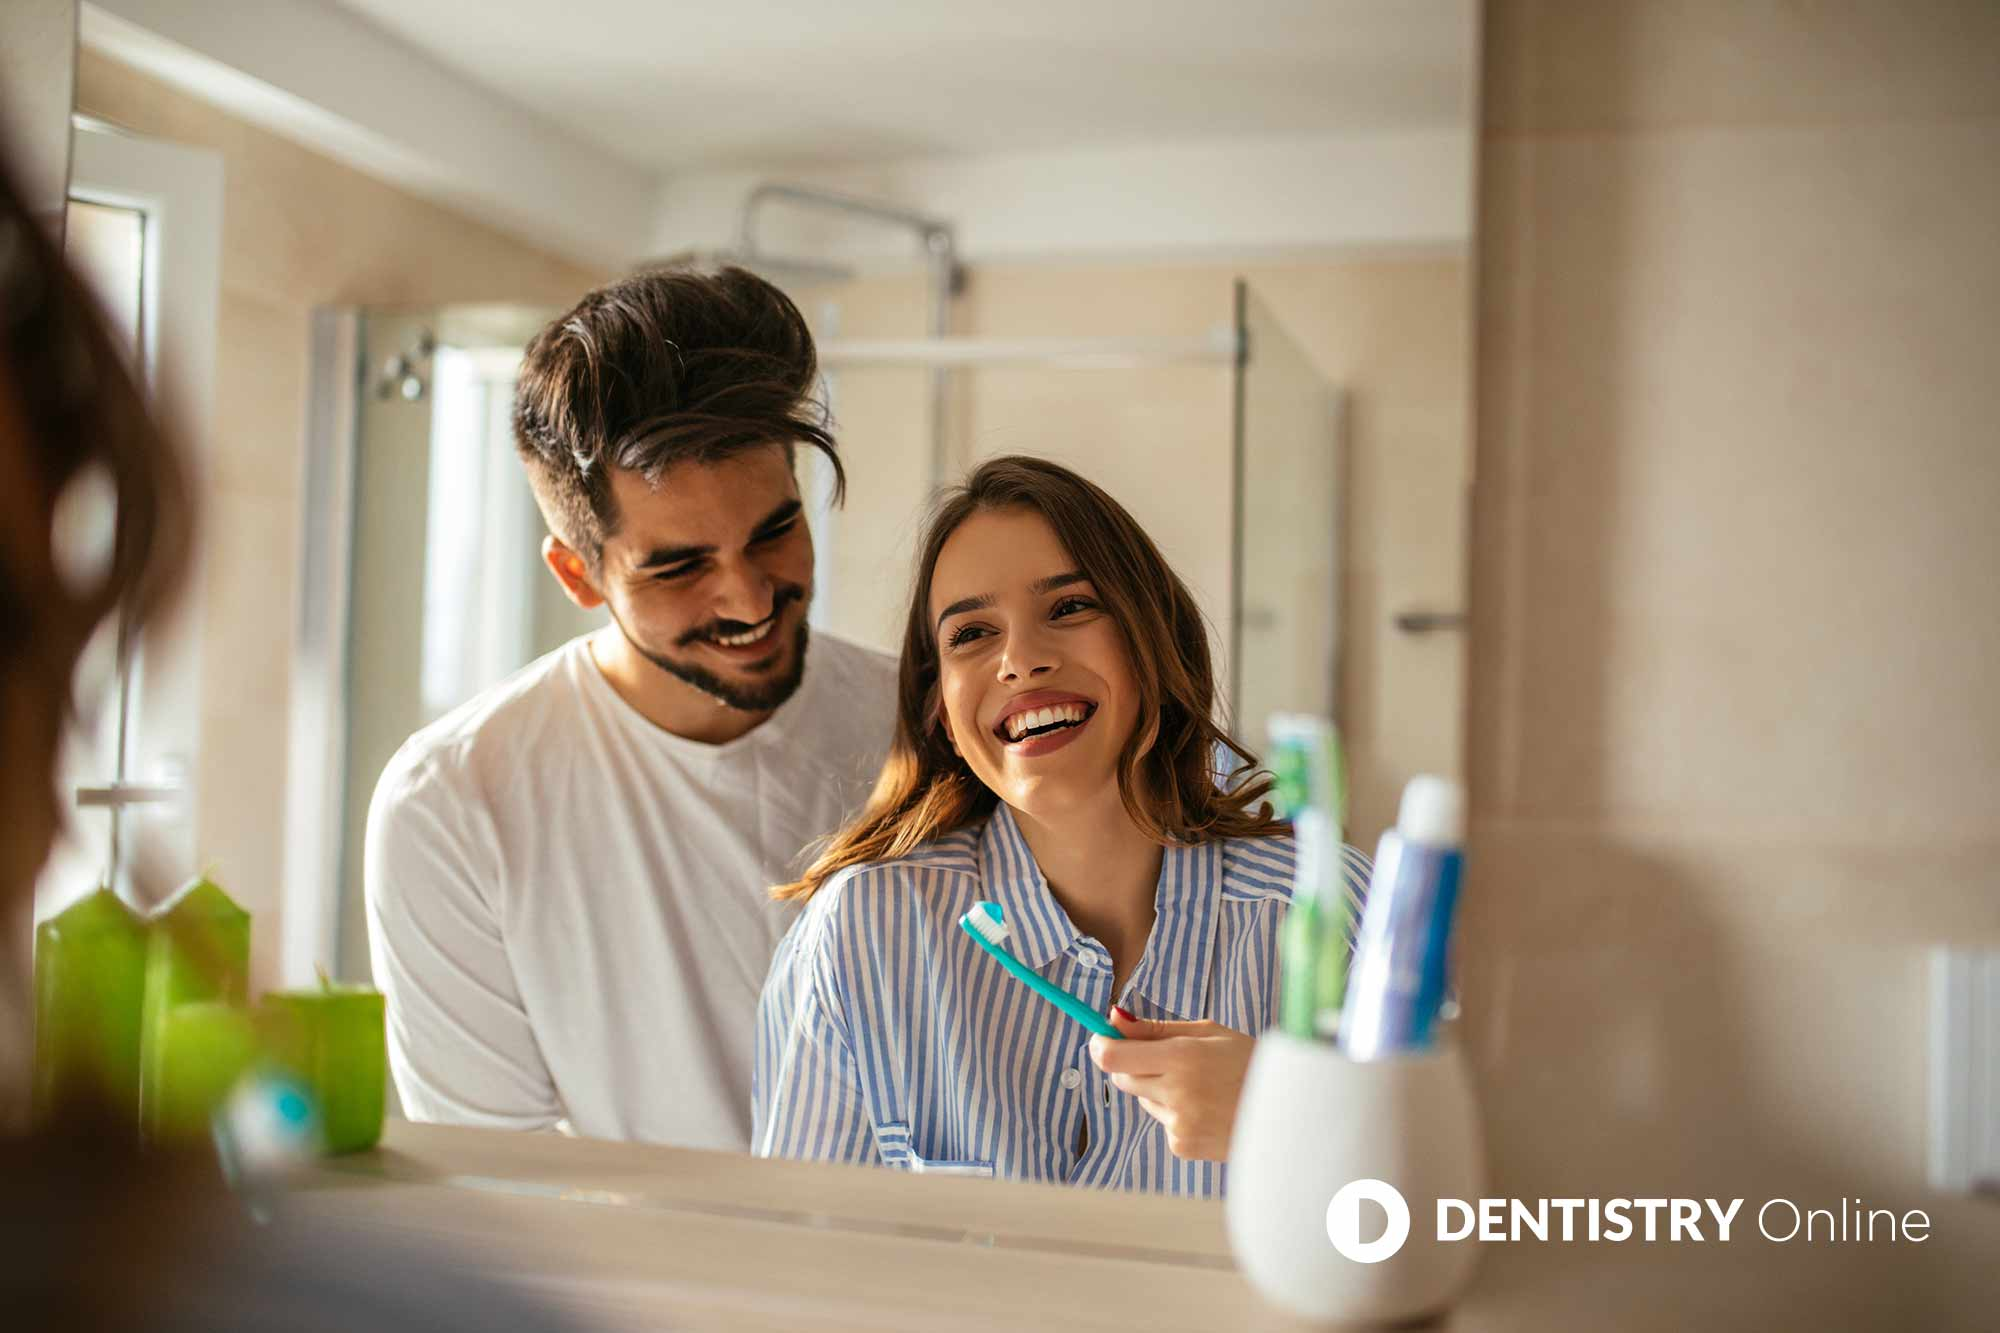 Sharing toothbrushes and toothpaste can contribute to the spread COVID-19, latest research reveals